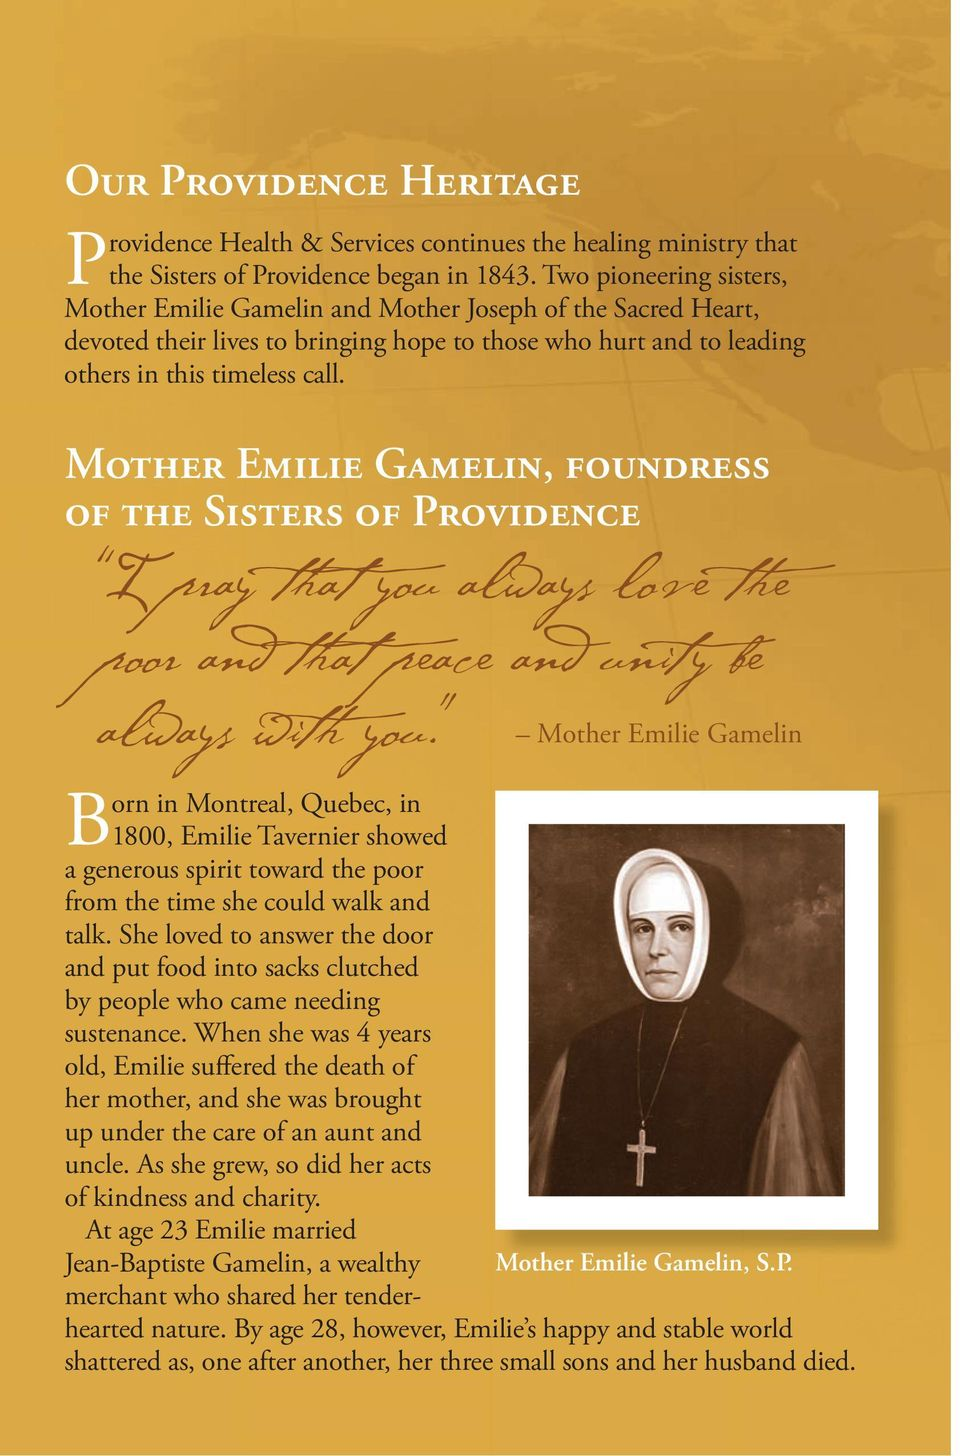 MOTHER EMILIE GAMELIN, FOUNDRESS OF THE SISTERS OF PROVIDENCE I pray that you always love the poor and that peace and unity be always with you. Mother Emilie Gamelin Mother Emilie Gamelin, S.P. Born in Montreal, Quebec, in 1800, Emilie Tavernier showed a generous spirit toward the poor from the time she could walk and talk.